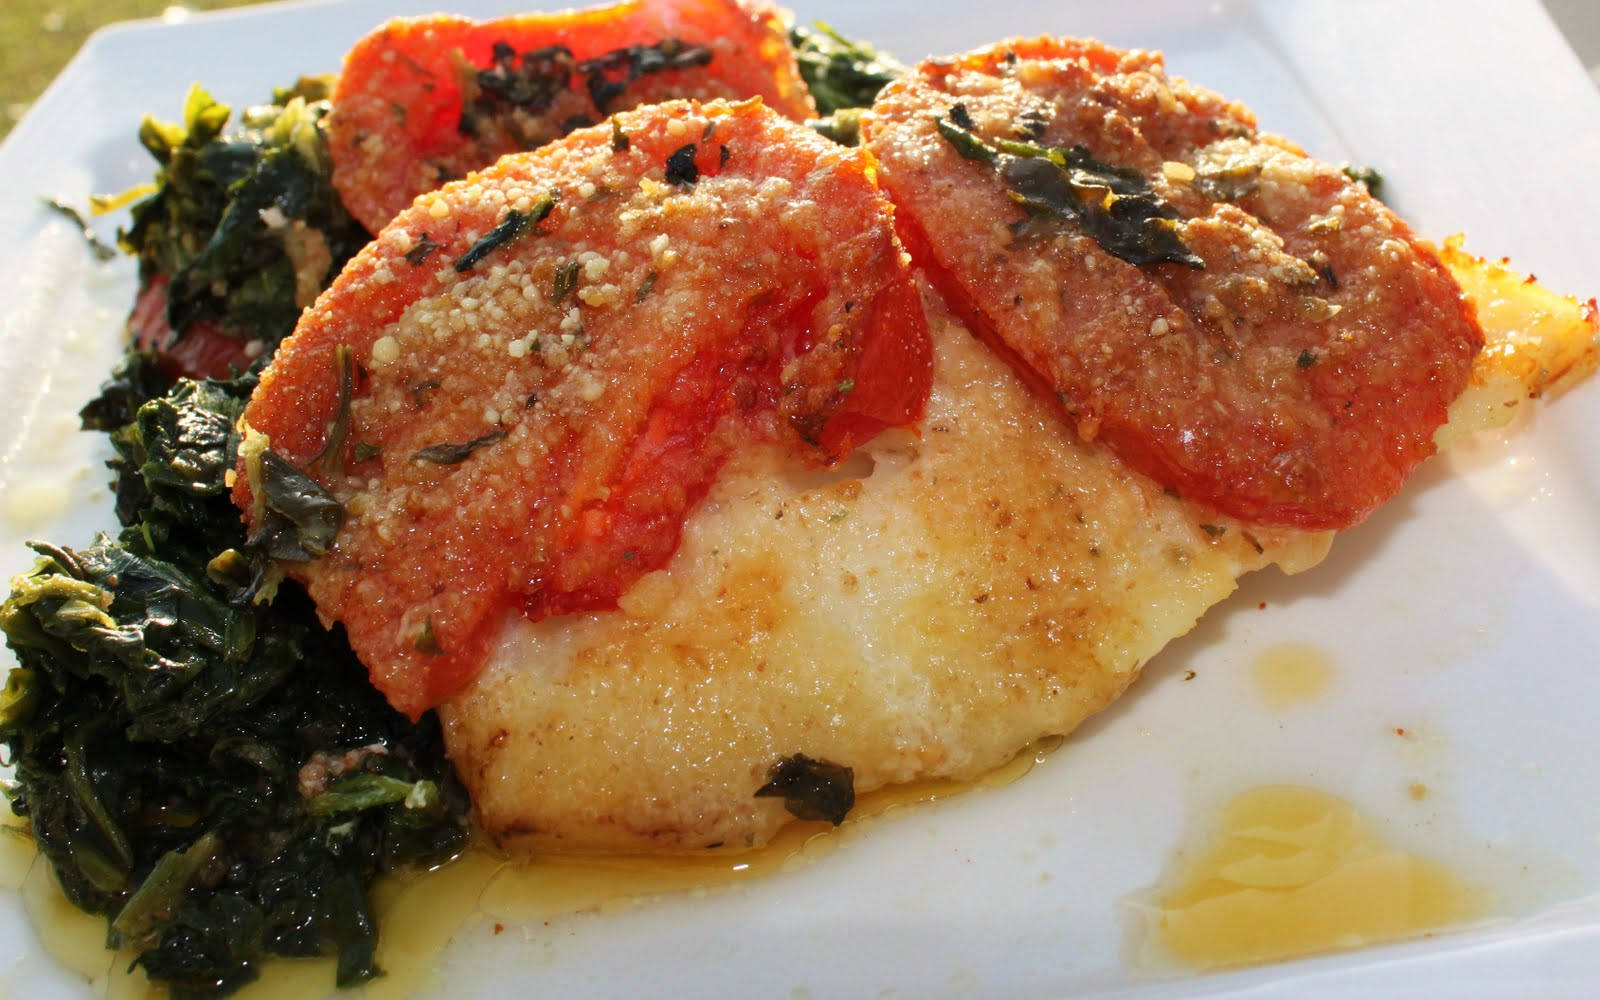 Baked Stuffed Haddock Recipes Baked haddock with spinach and